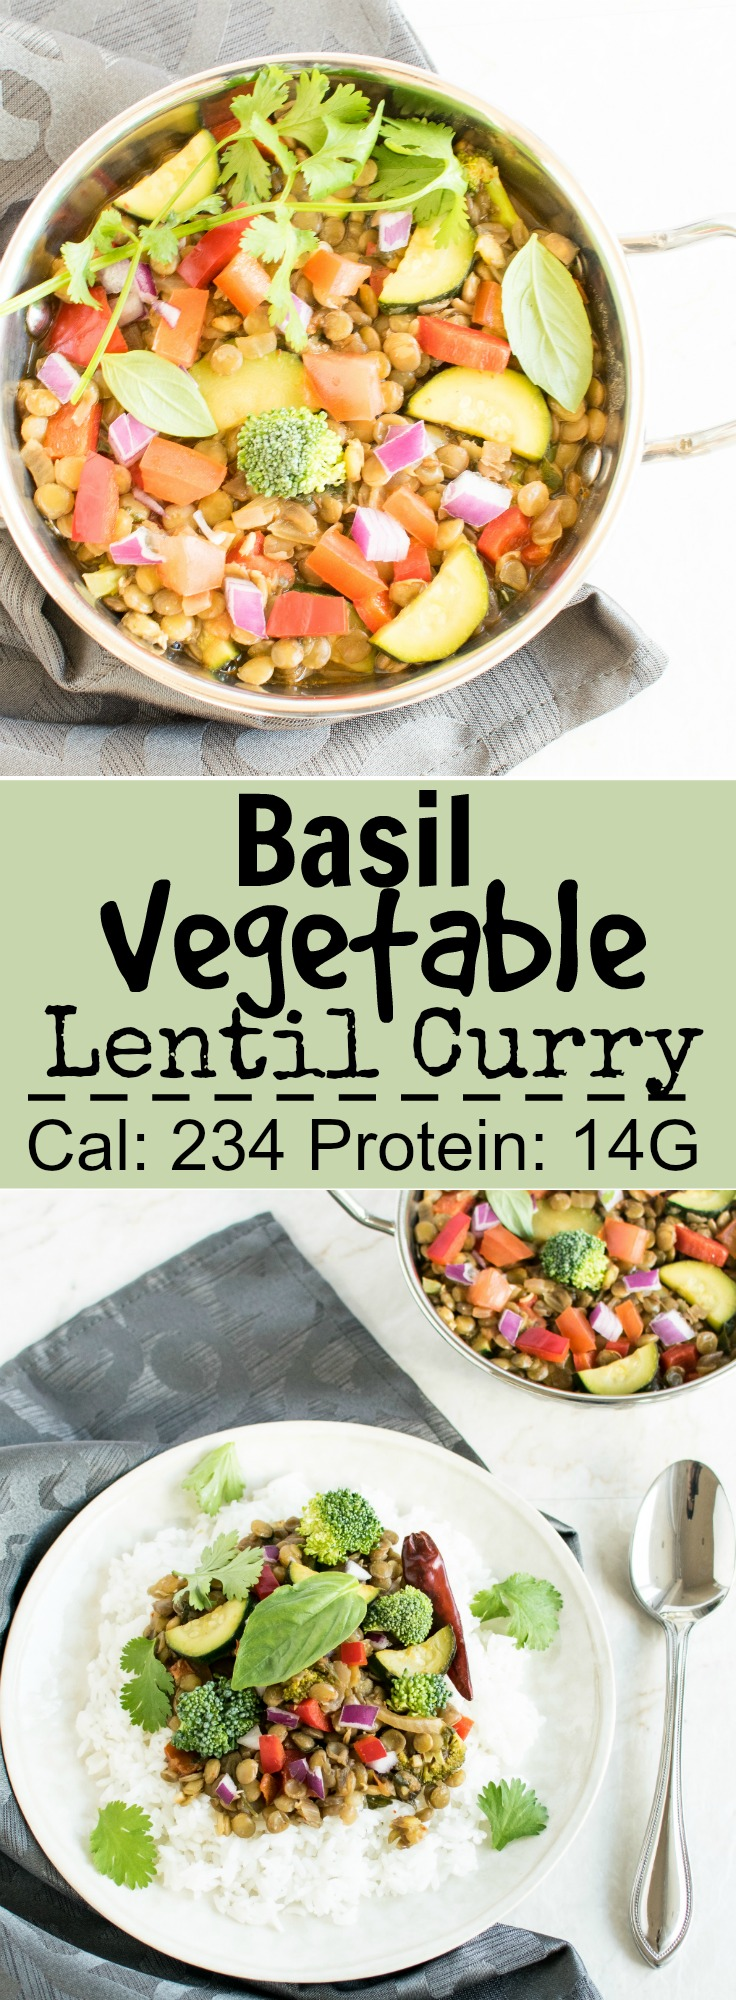 Basil Vegetable Lentil Curry | Vegan and gluten free delicious meal cooked in fresh basil herbs and flavored with a variety of seasonings and added lots of vegetables | kiipfit.com